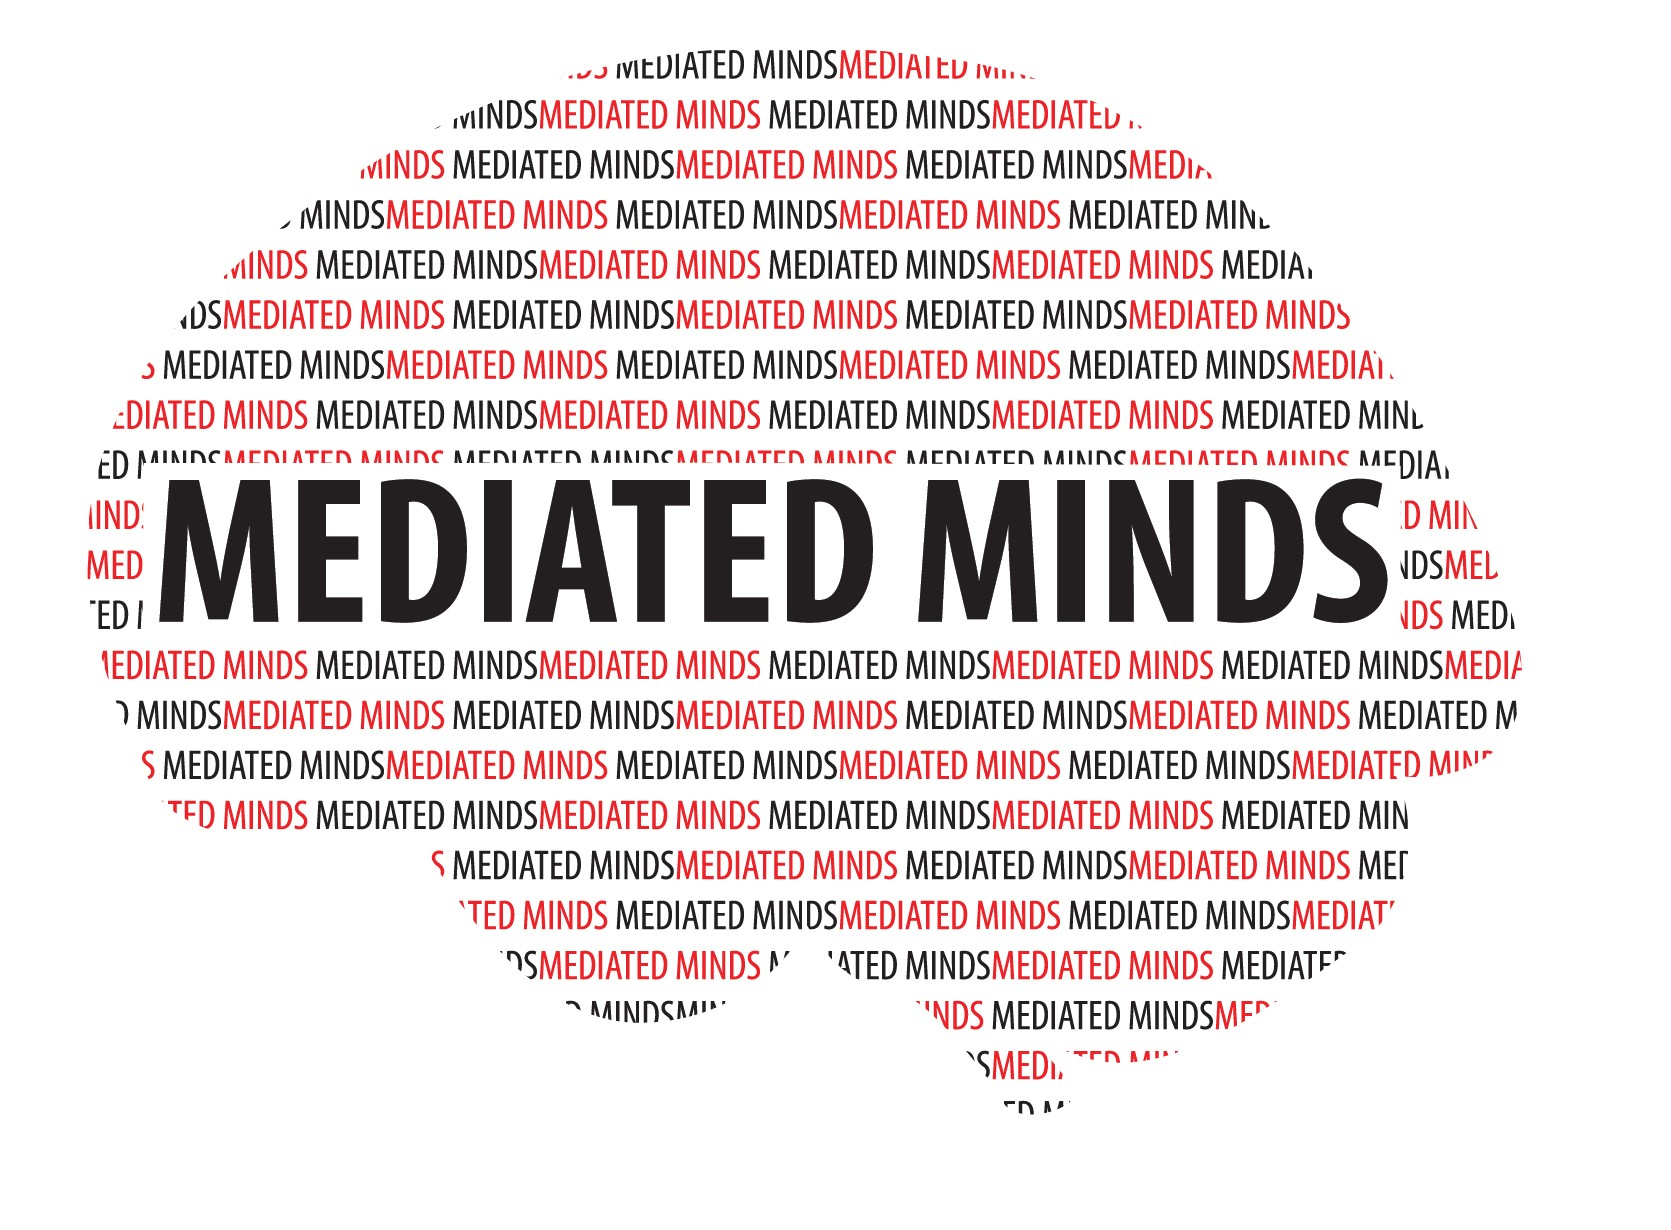 Logo of the Mediated Minds Conference